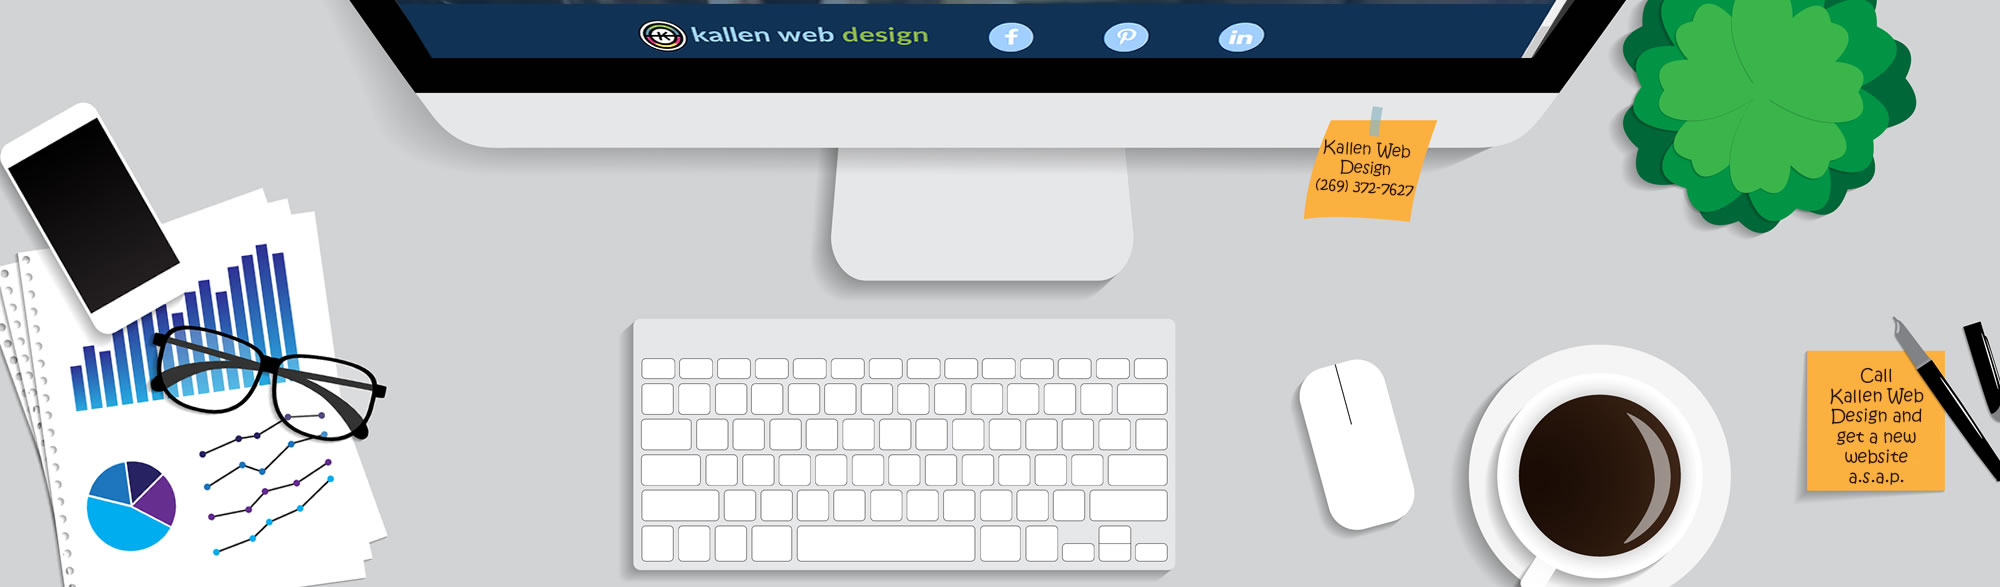 Image showing desktop items highlighting the need to call Kallen Web Design for the best web development in Kalamazoo.